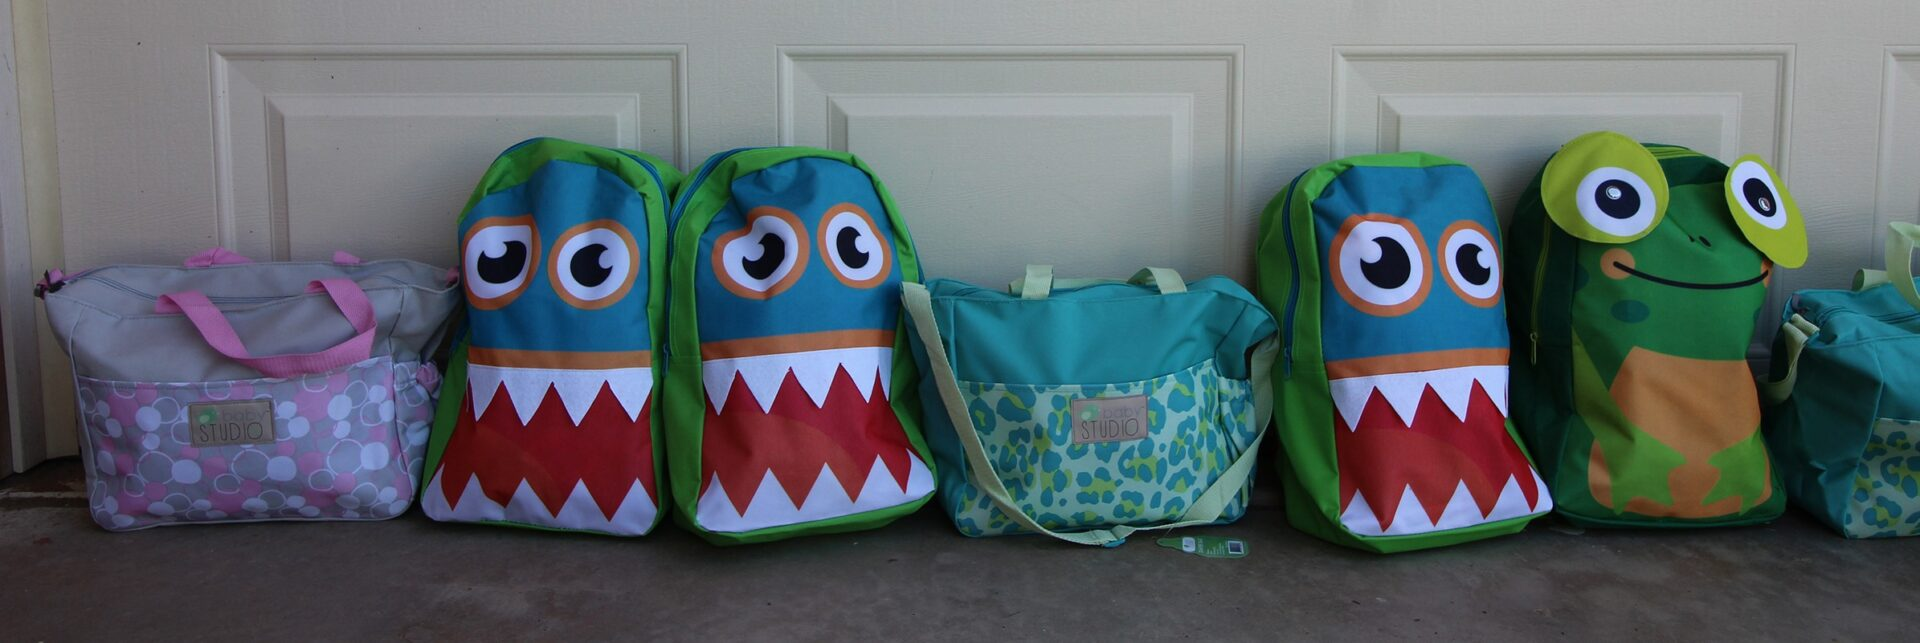 bags-for-kids-face-bags